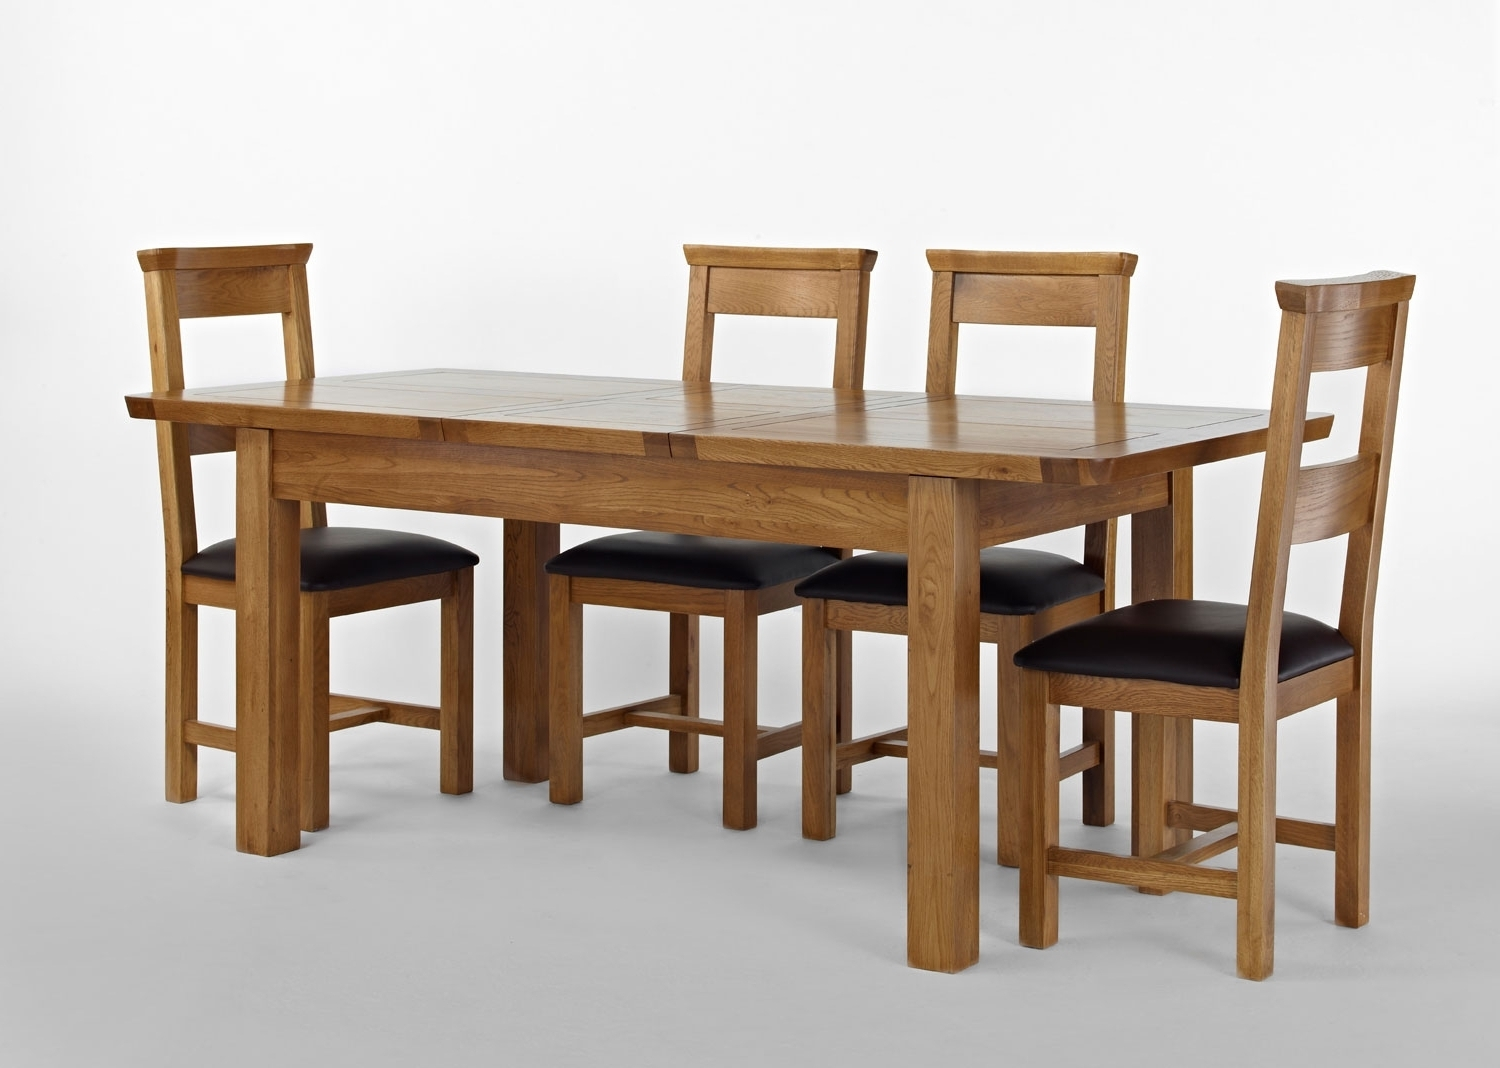 Well Liked Knightsbridge Oak Extending Dining Table 4 Or 6 Dining Room Paint For Extending Dining Tables And 4 Chairs (View 13 of 25)